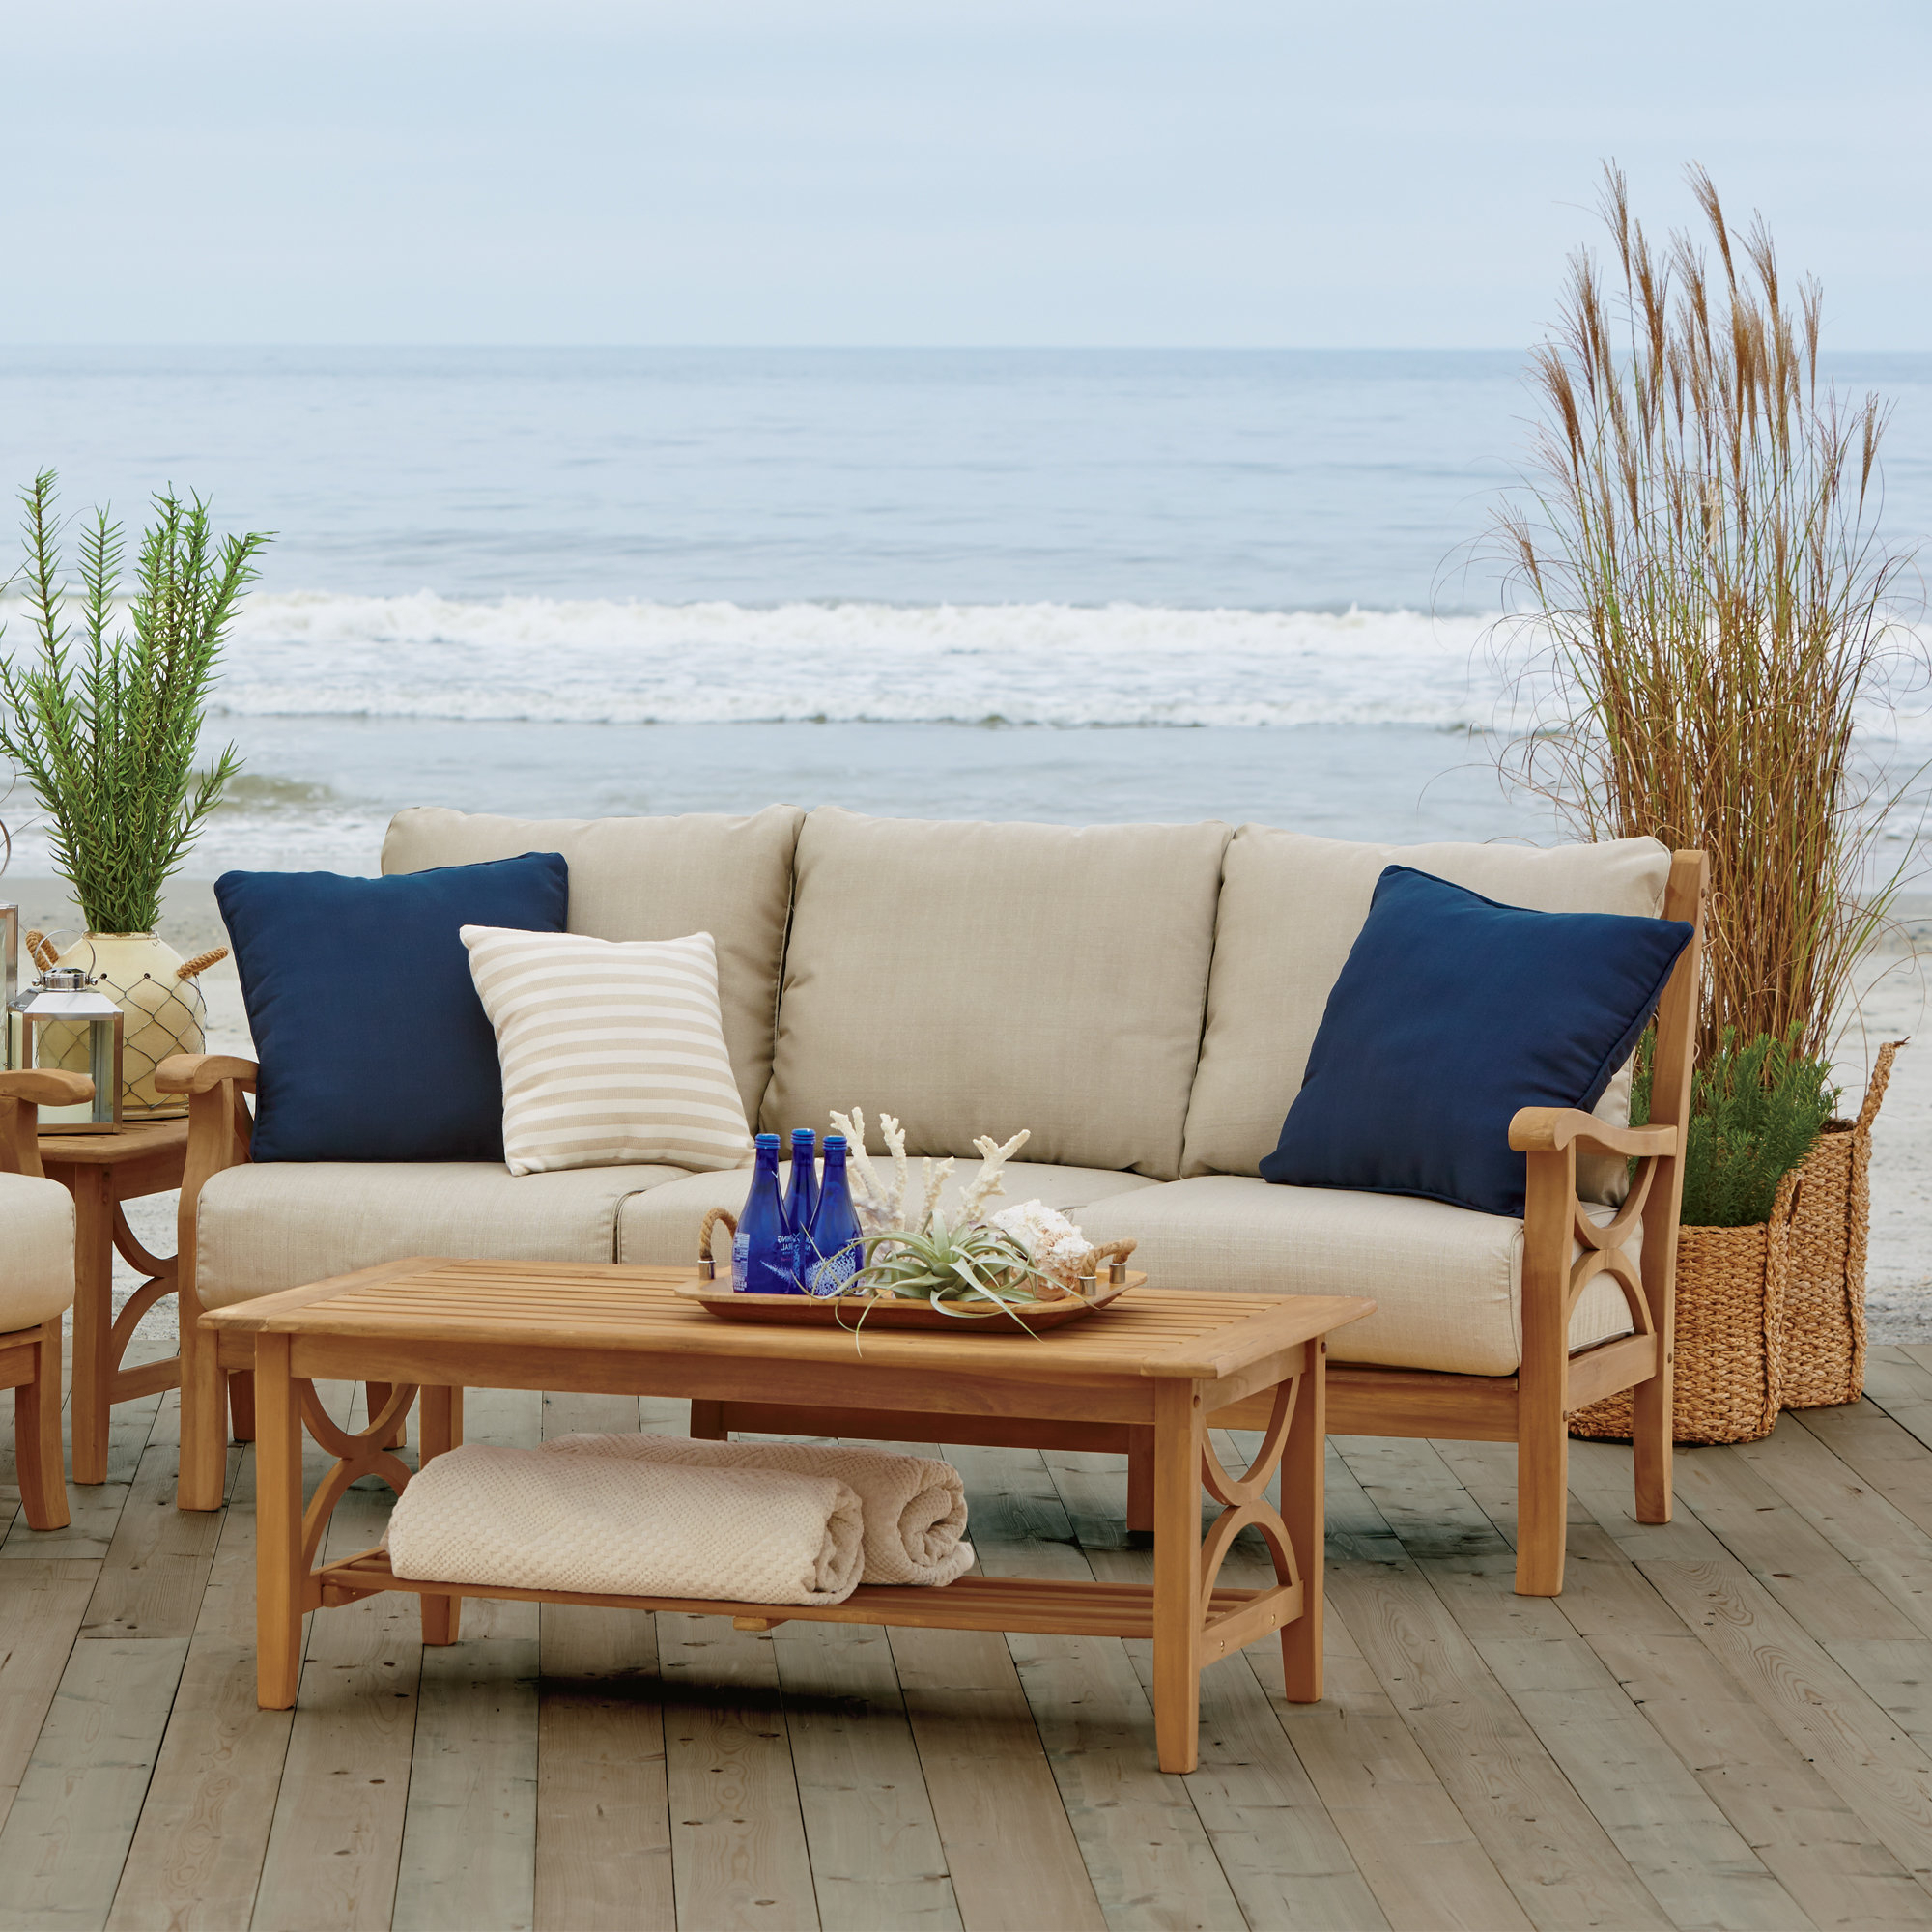 Brunswick Teak Patio Sofa With Cushions Within Most Current Summerton Teak Patio Sofas With Cushions (View 3 of 20)